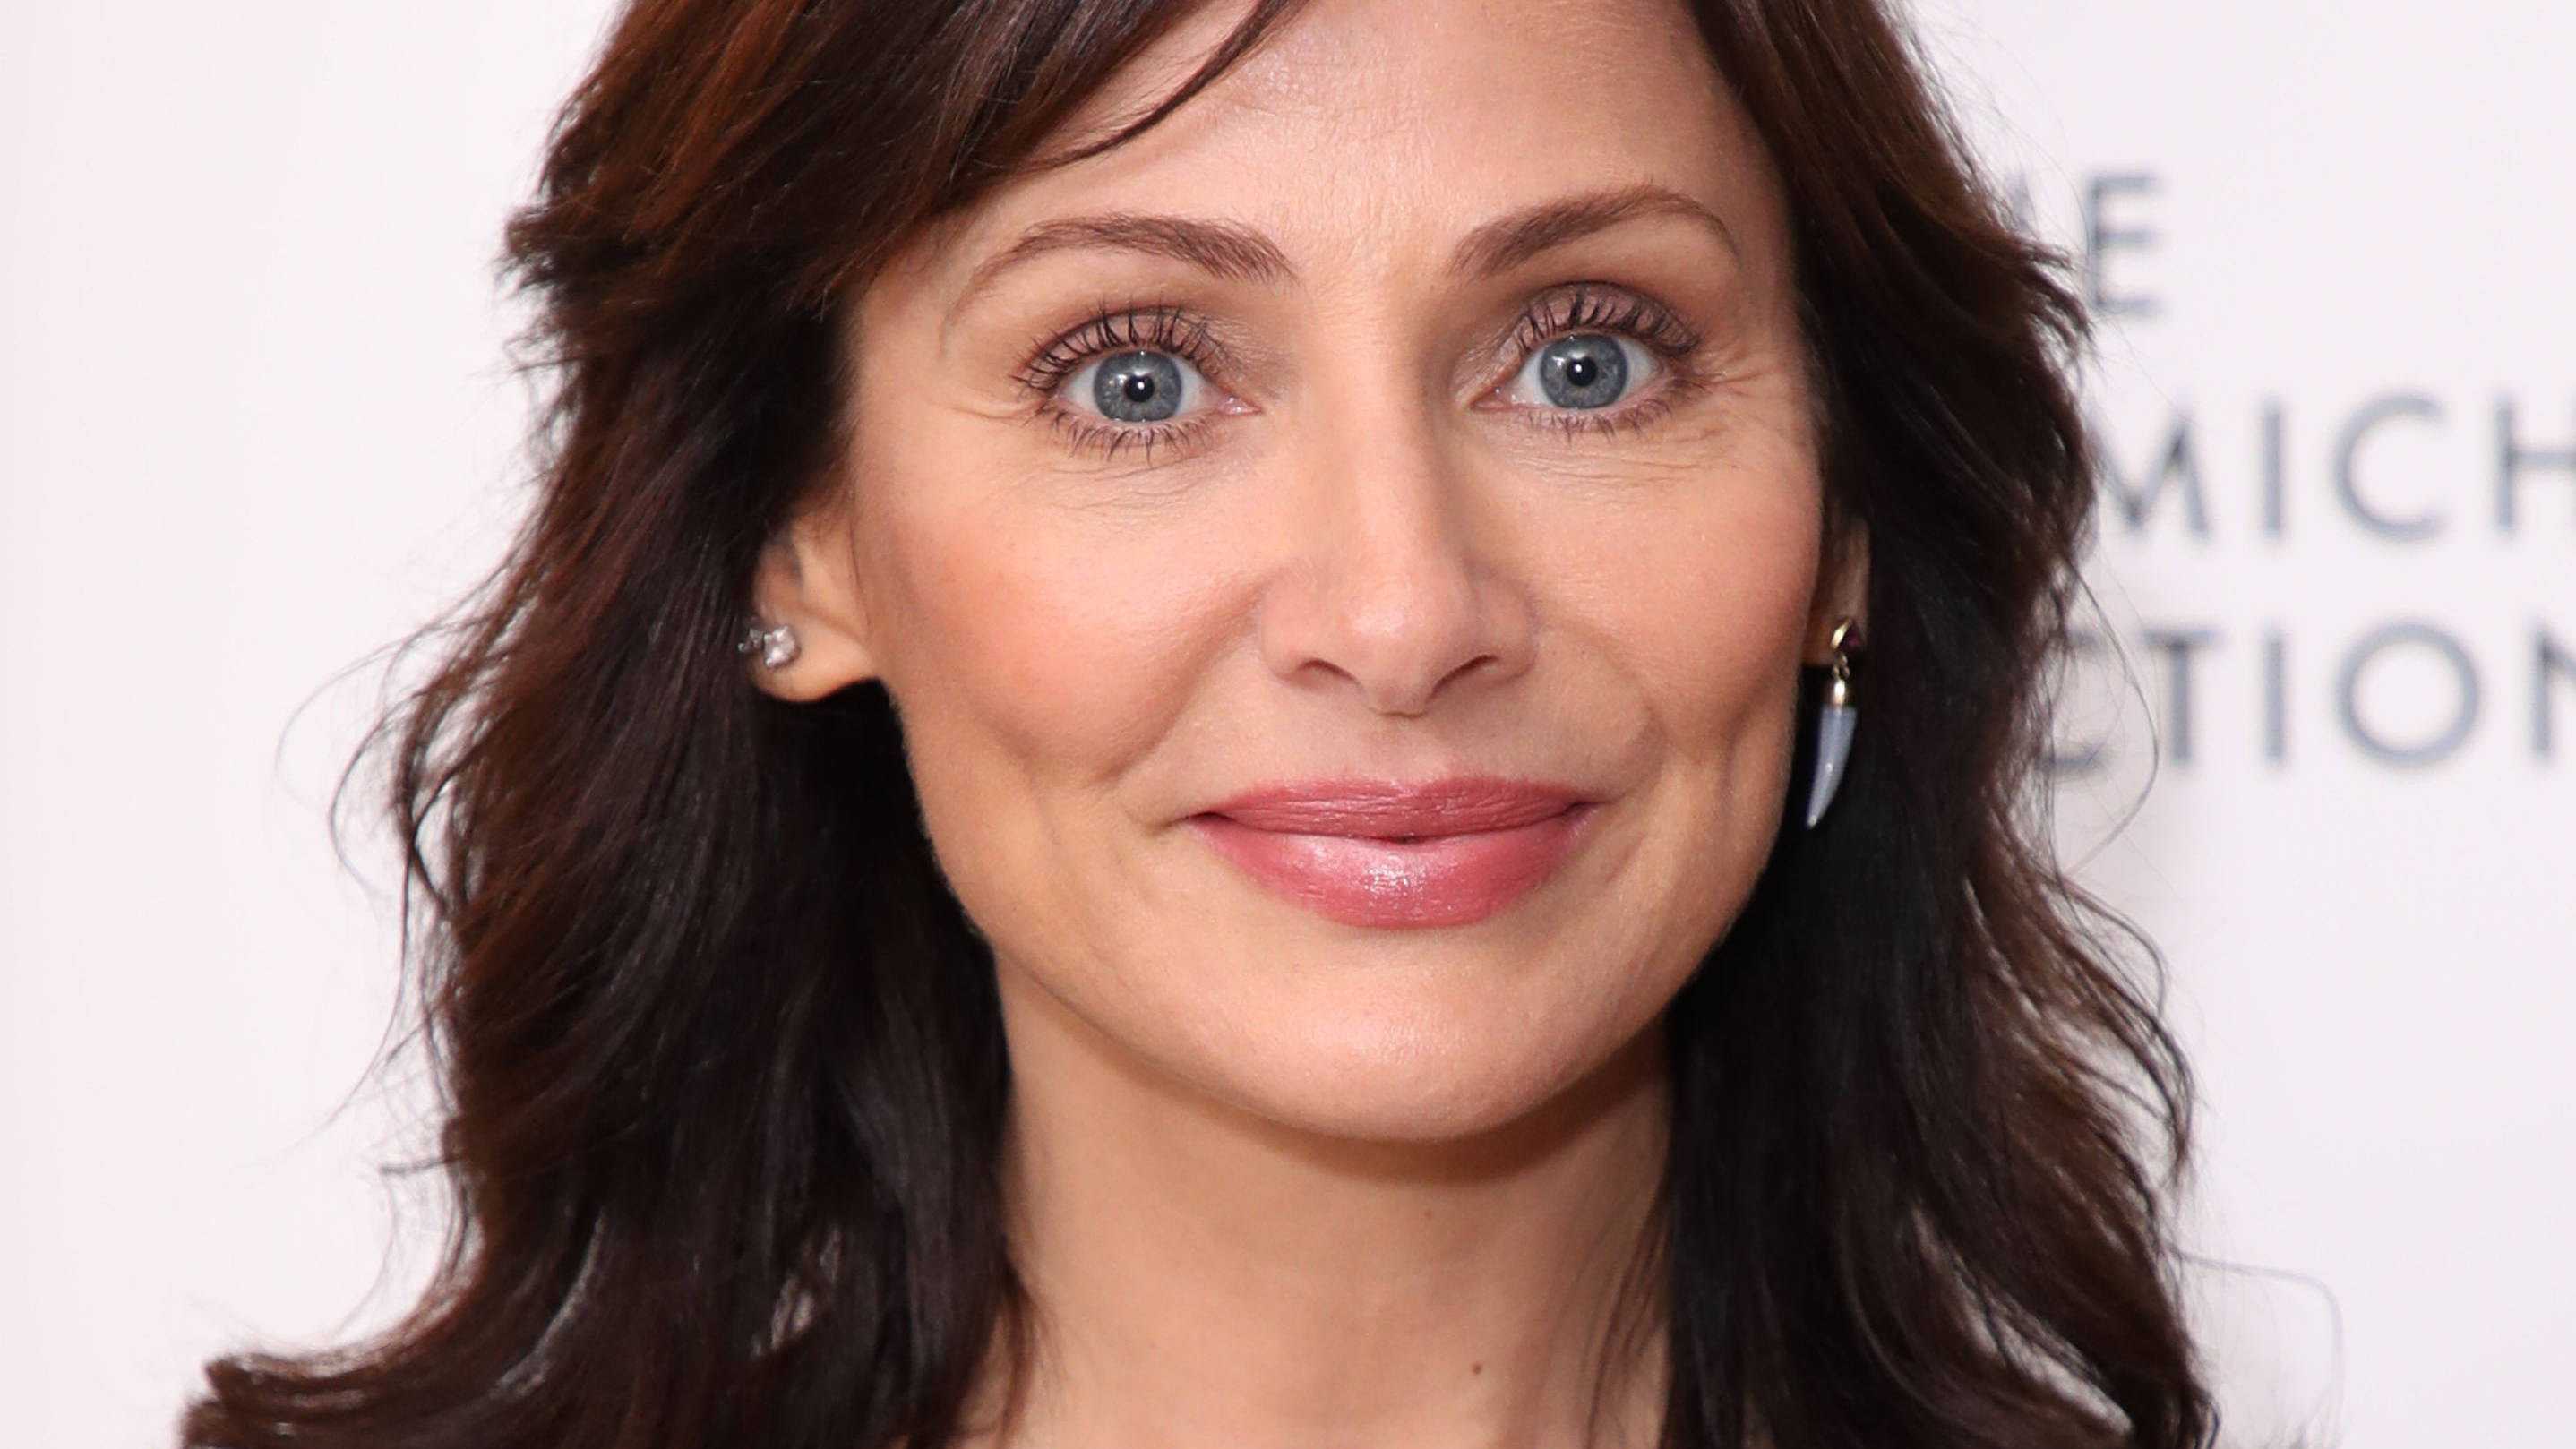 Natalie Imbruglia announces first pregnancy at 44: